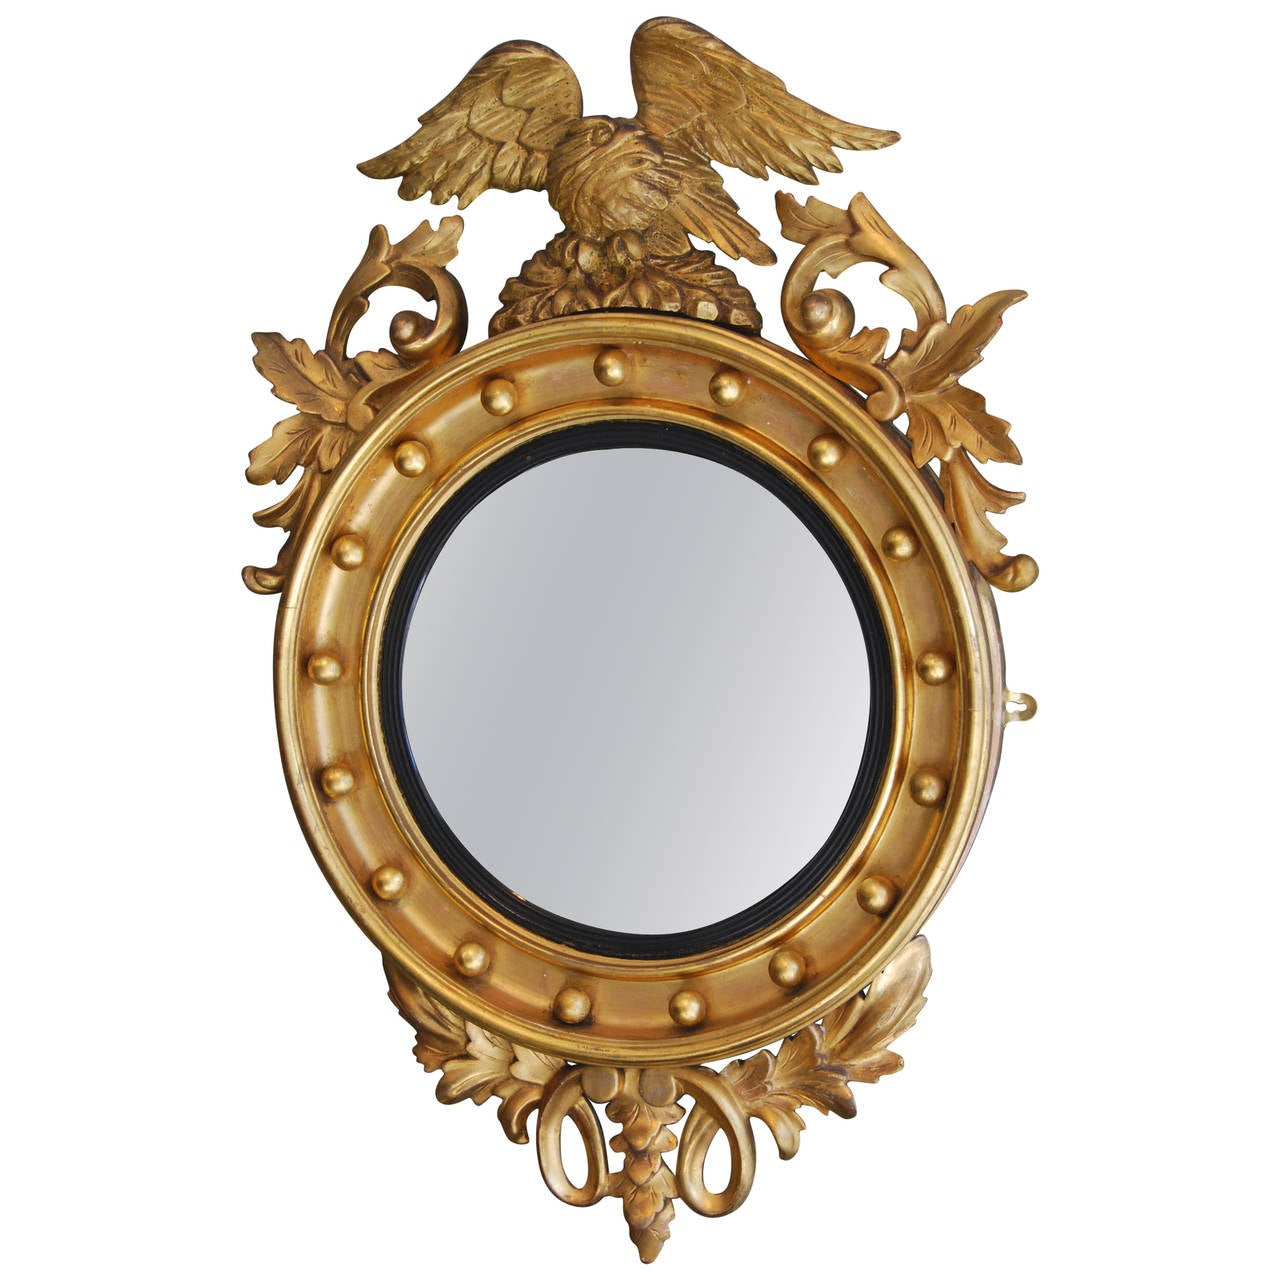 Regency convex gilt mirror at 1stdibs for Convex mirror for home